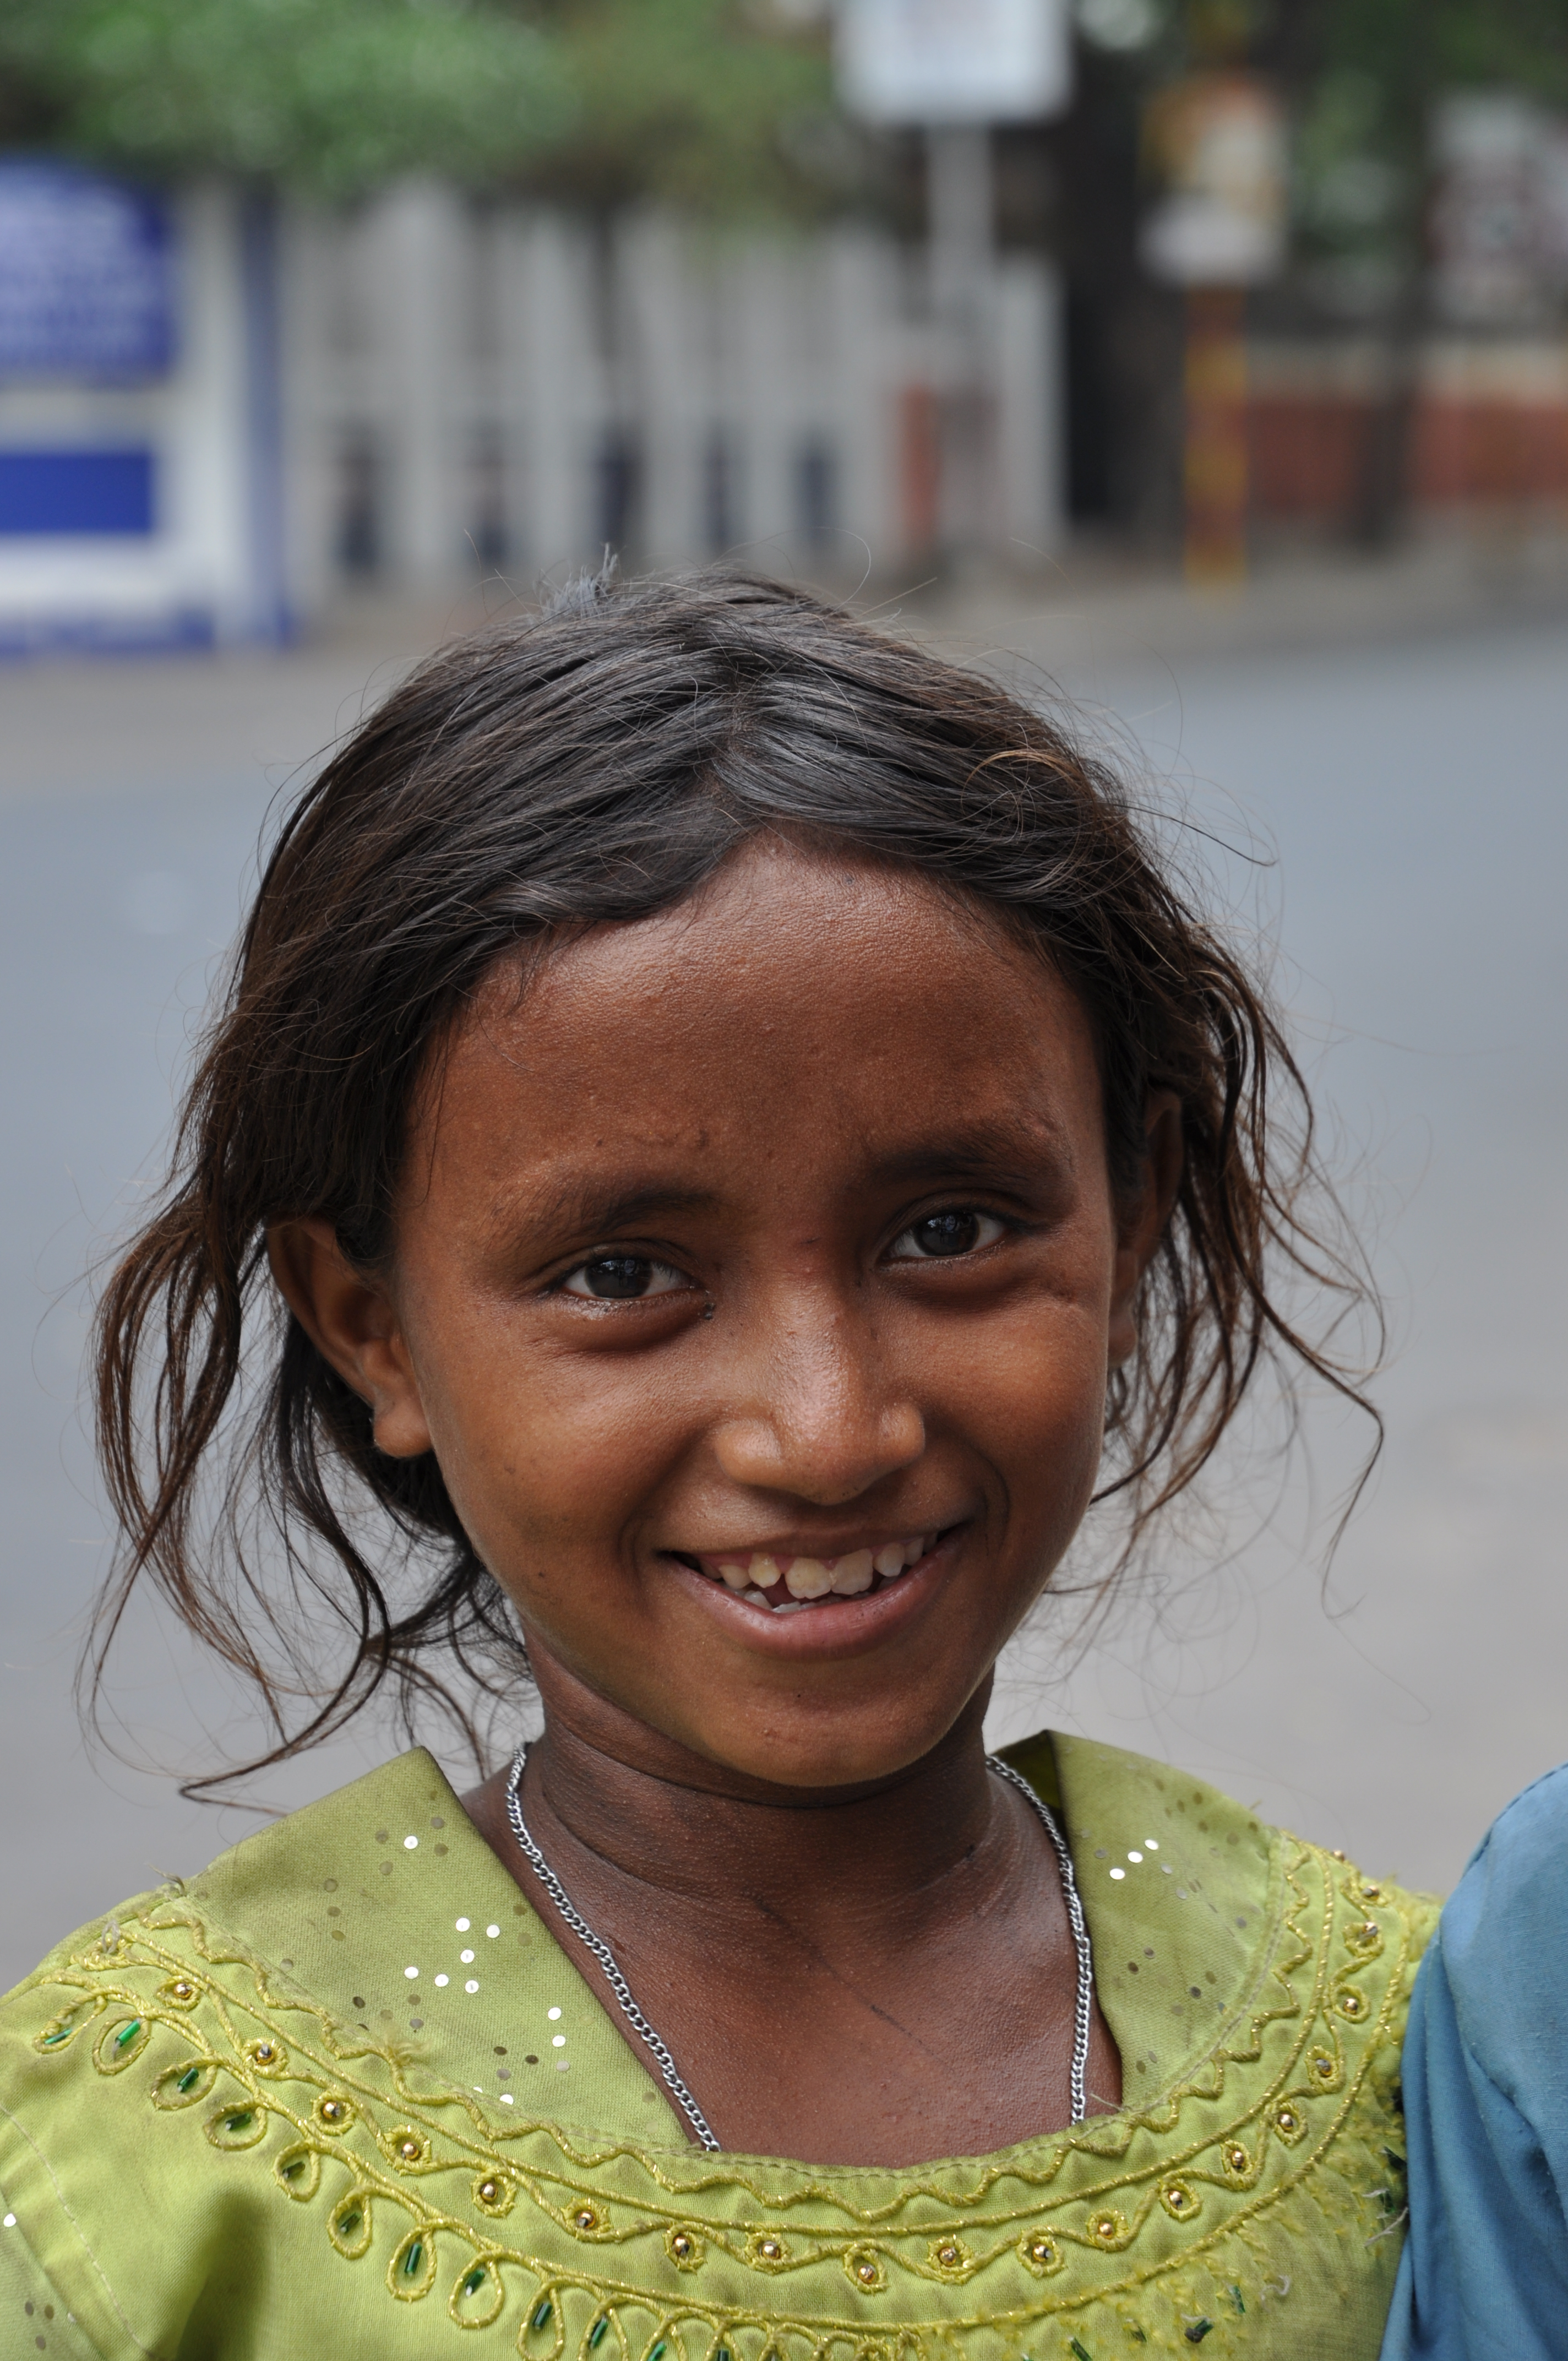 File:Street Child Kolkata 0040.JPG - Wikimedia Commons